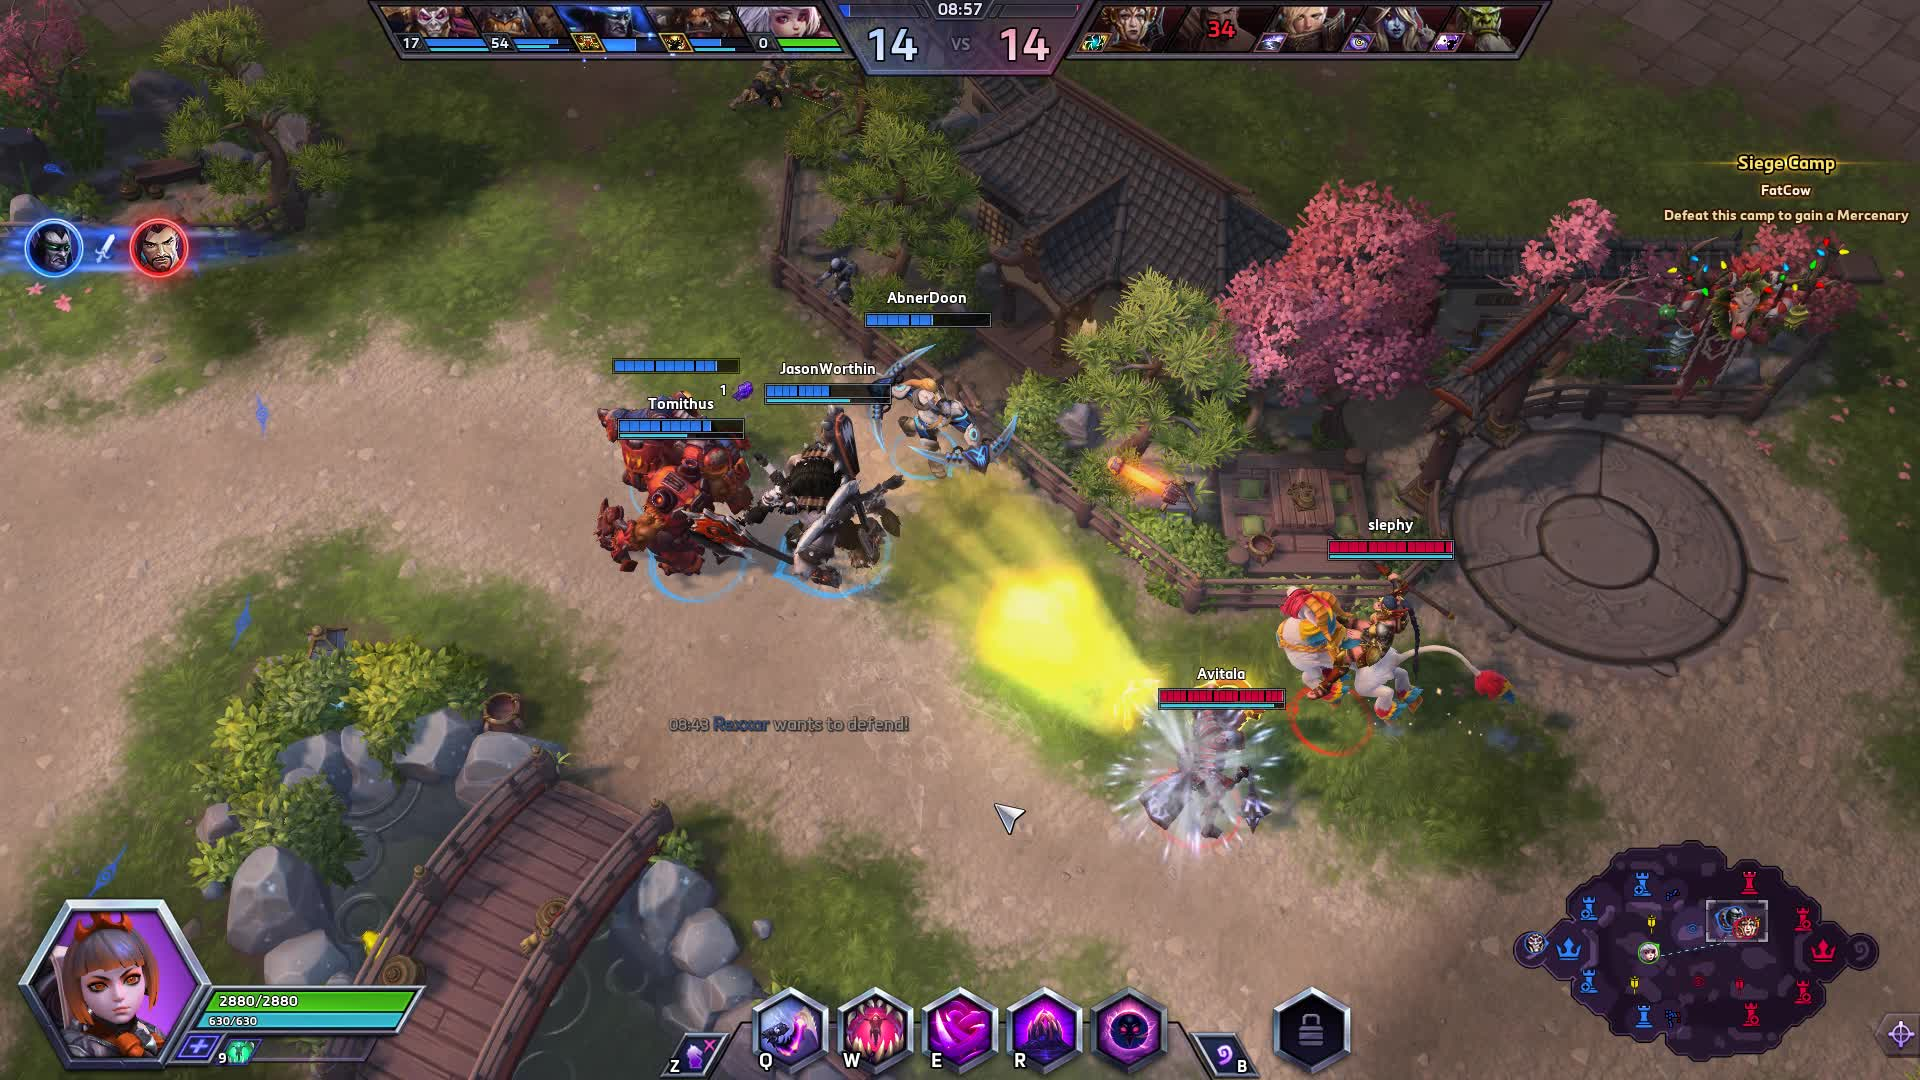 heroesofthestorm, vlc-record-2018-11-25-23h25m48s-Heroes of the Storm 2018.11.25 - 23.17.05.05.DVR.mp4- GIFs